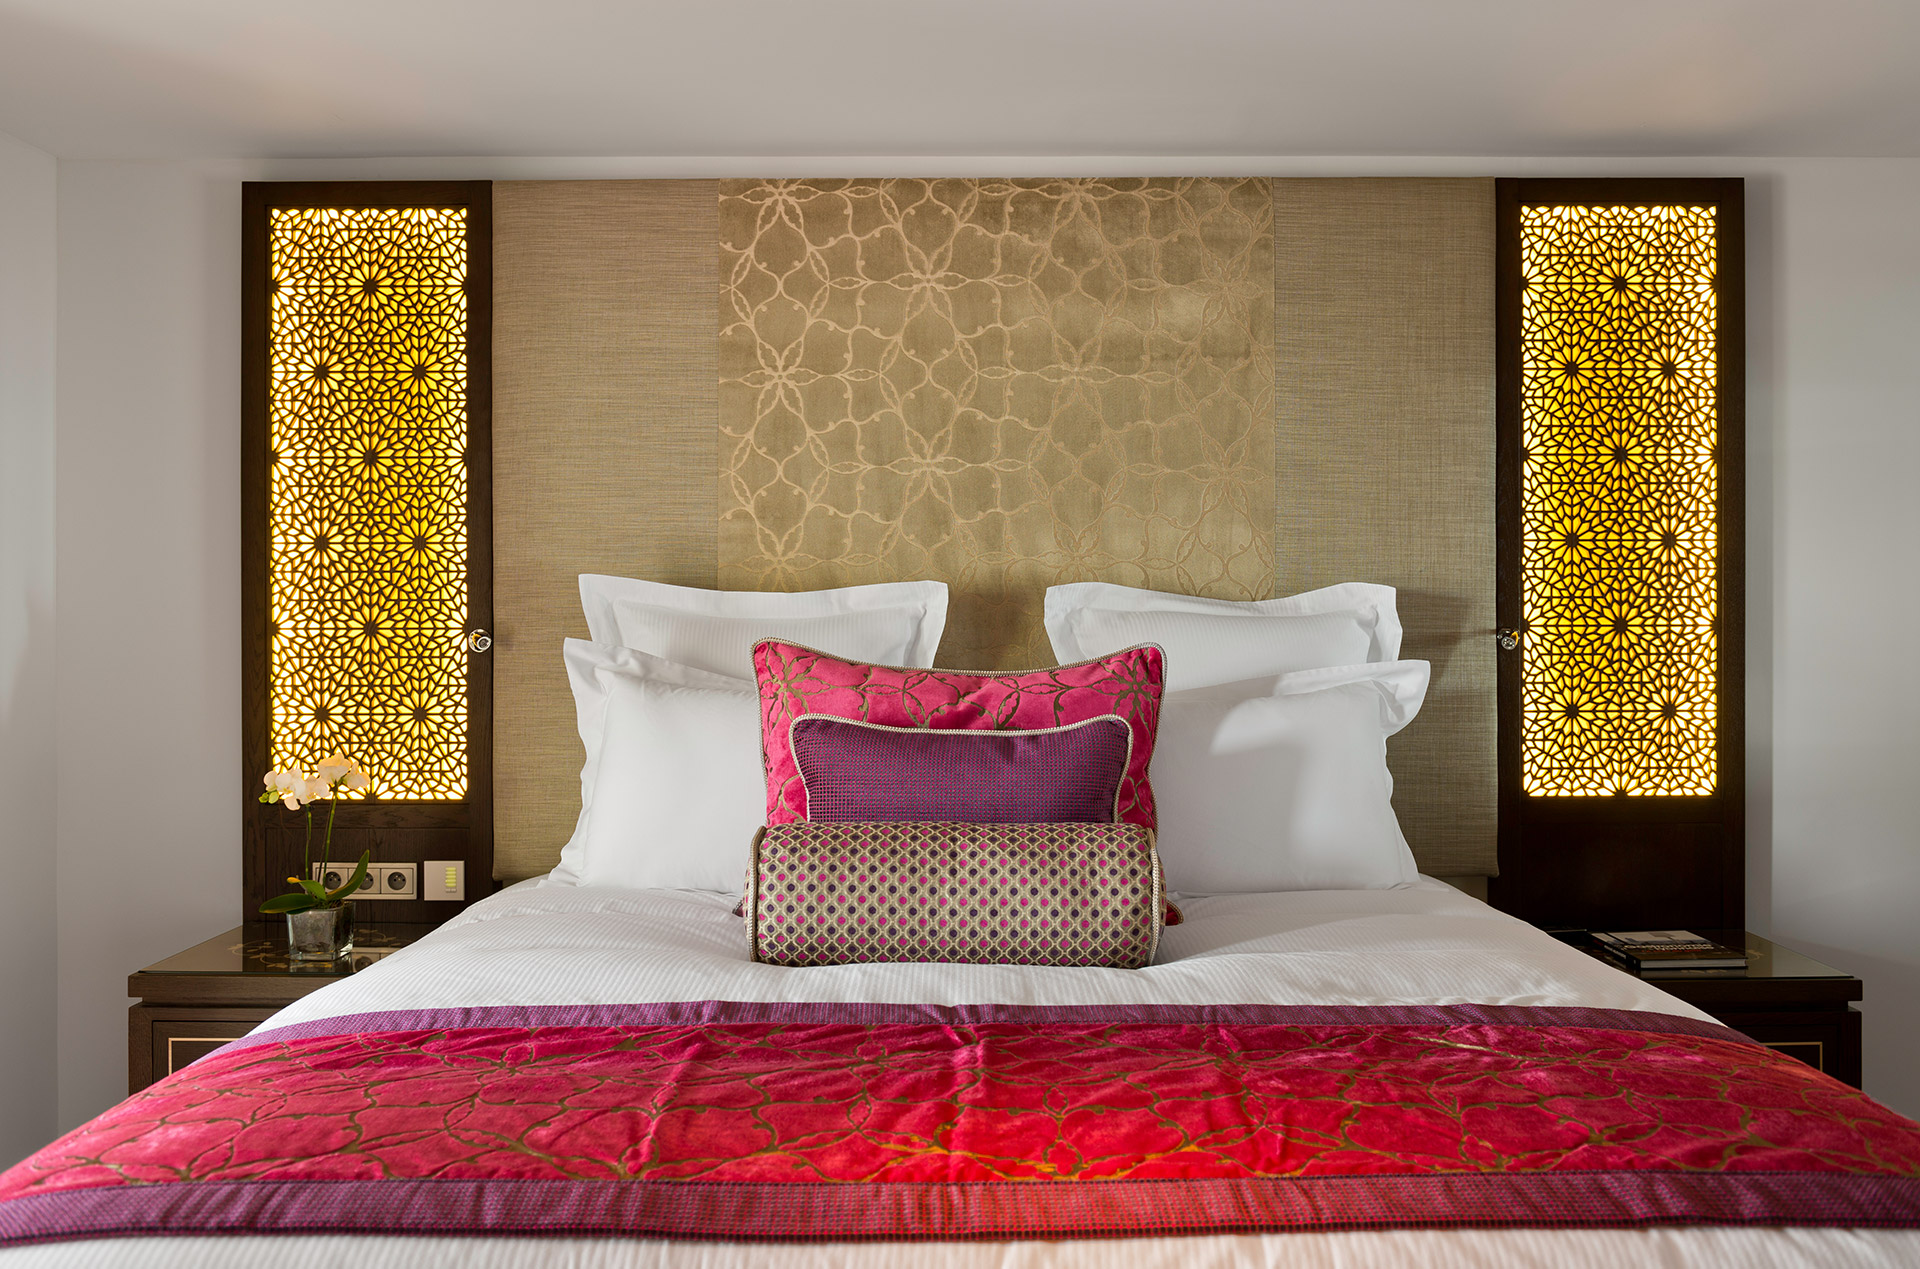 Miramar Beach Hotel & Spa - Classic Room - Bed